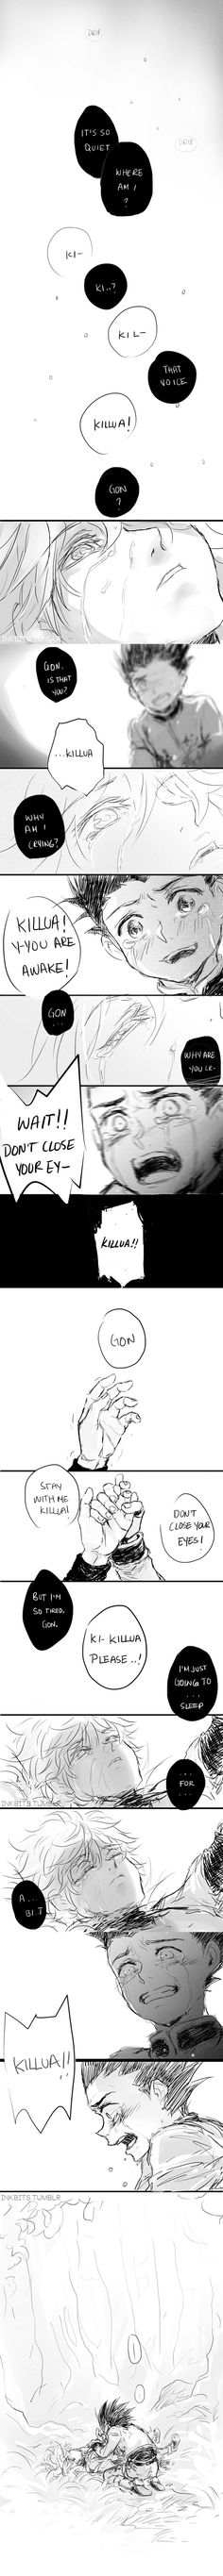 Killua and Gon #comic #crying